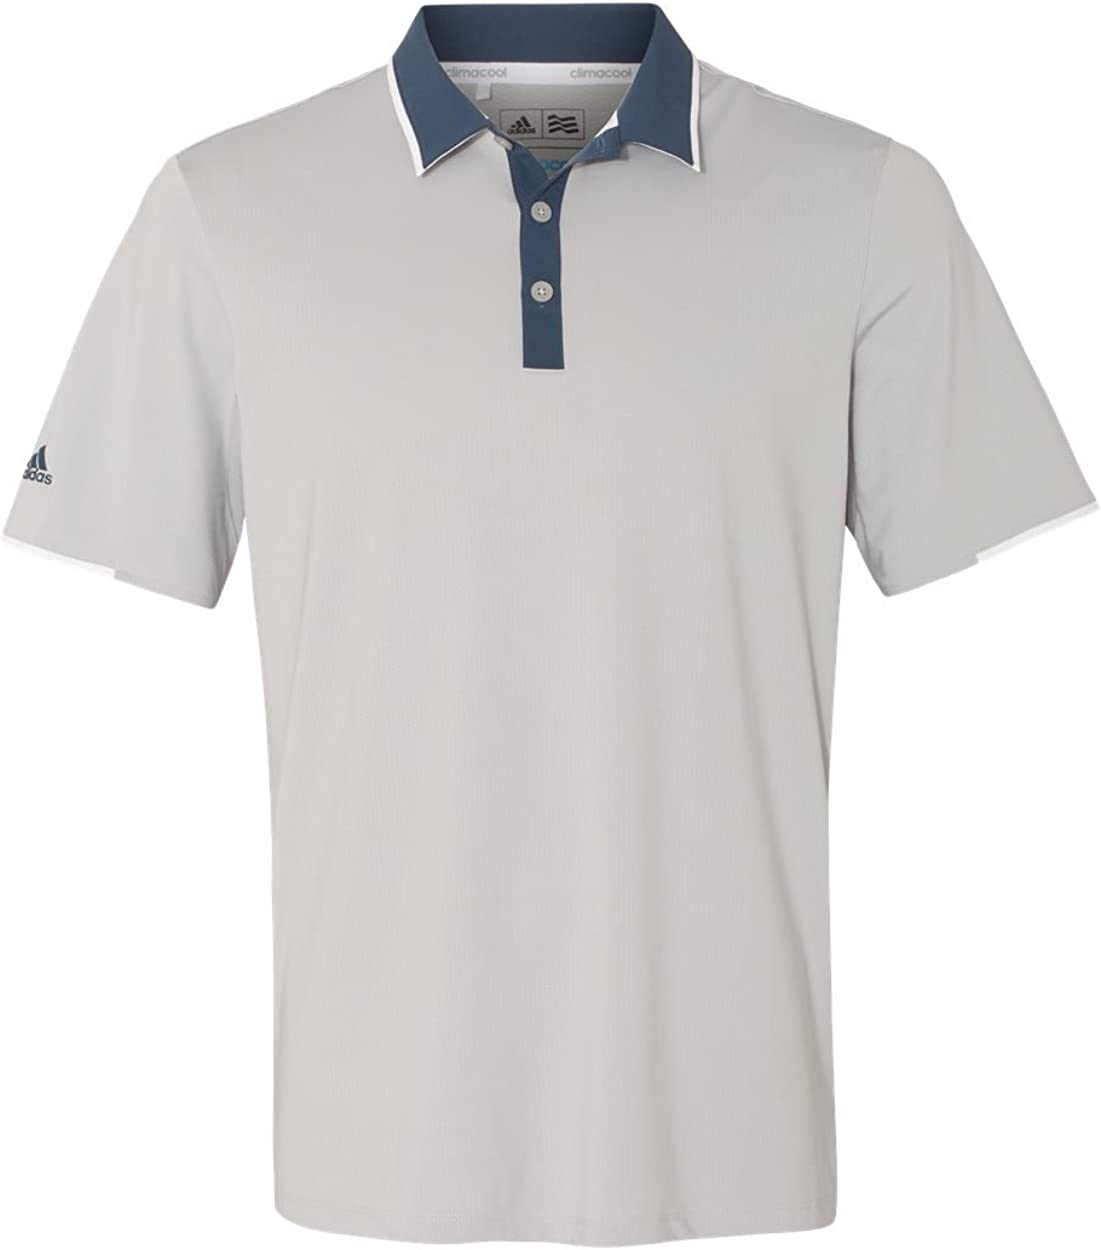 adidas Climacool Performance Polo (A166) at  Men's Clothing store